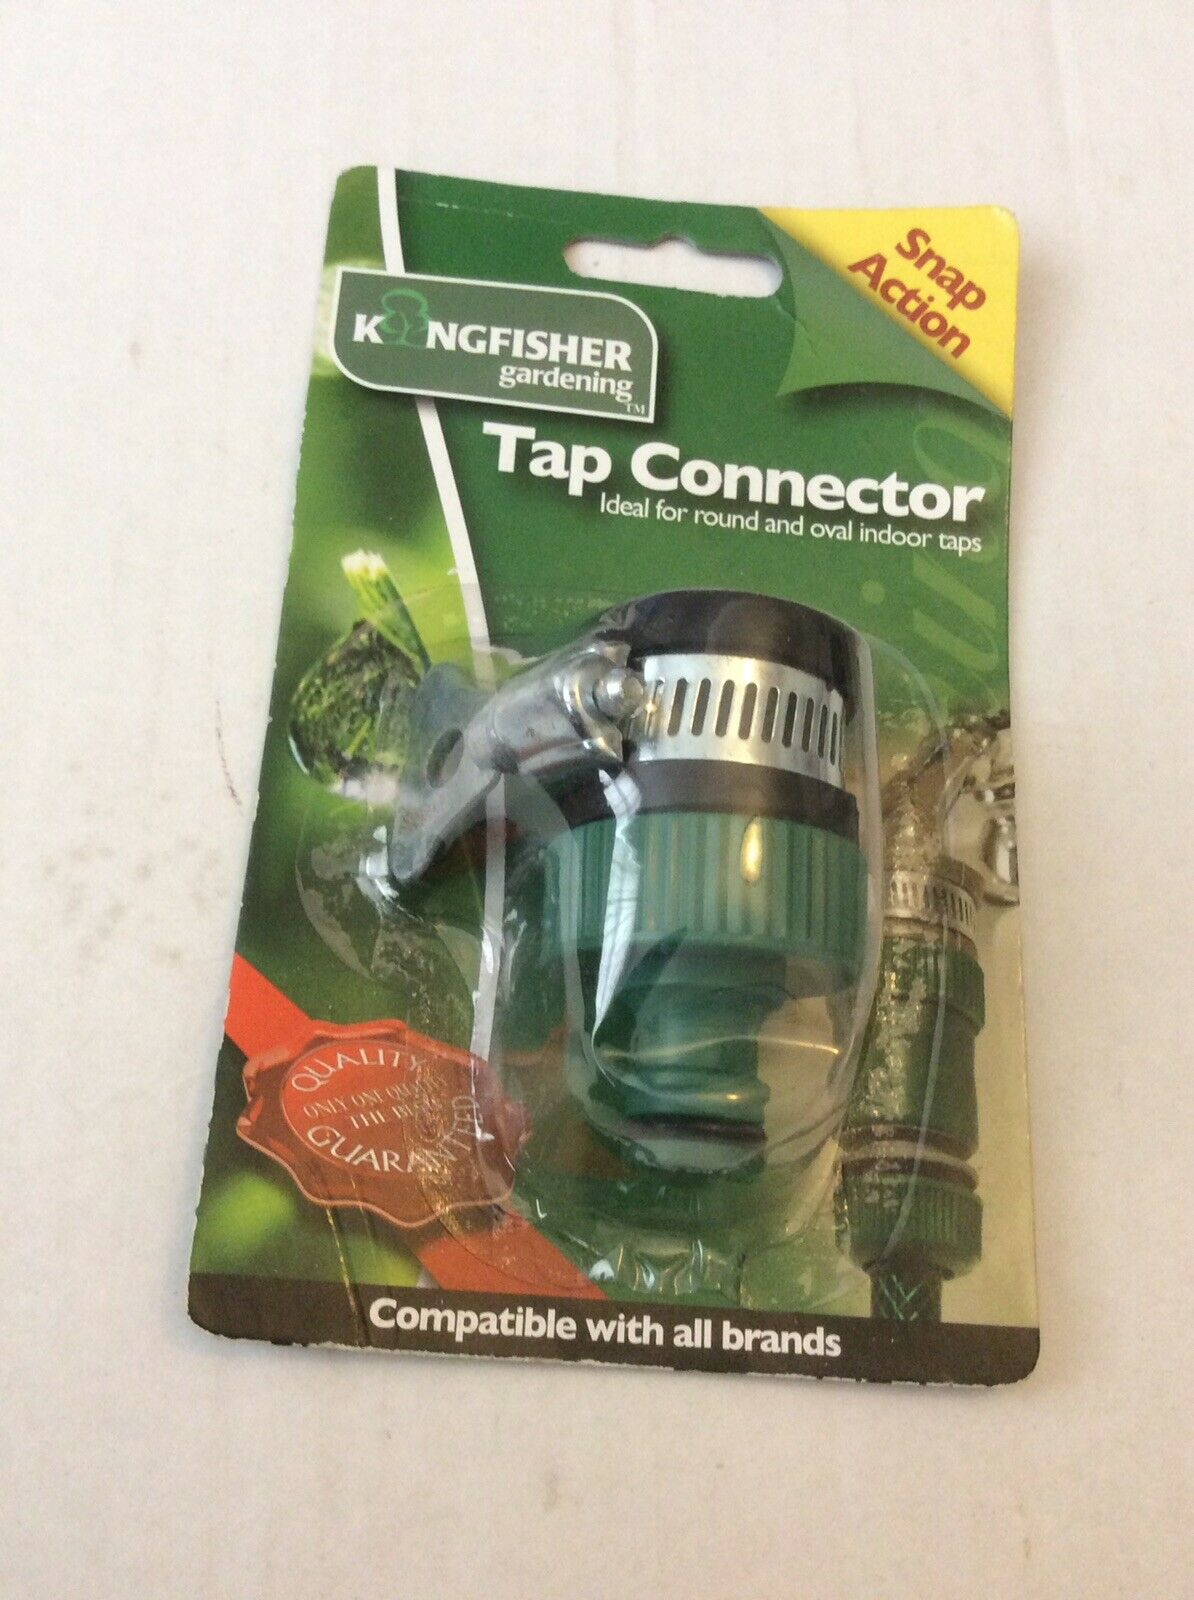 Kingfisher Tap Connector